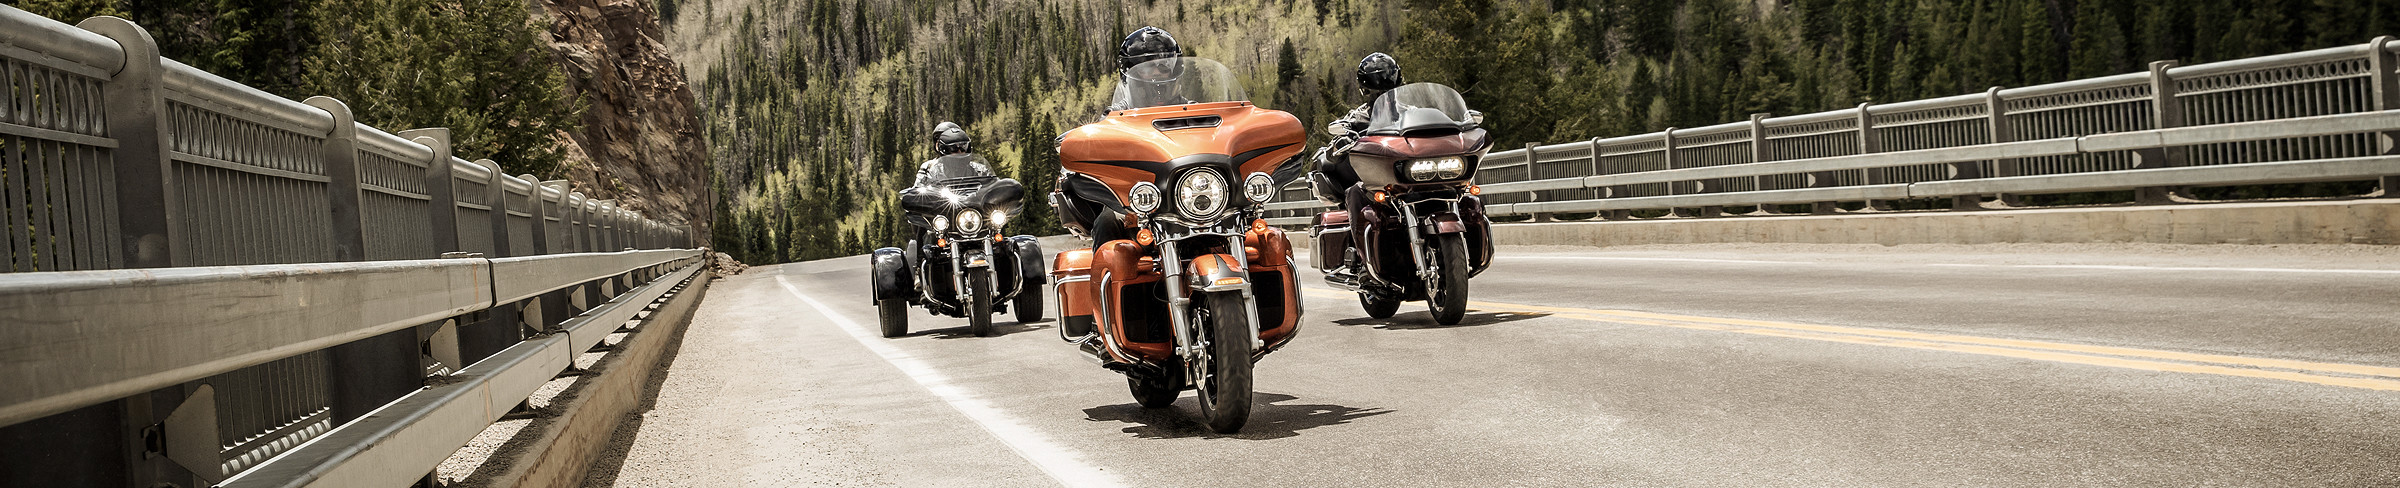 New Harley-Davidson Touring Road King Motorcycles for sale near Dover, Ohio